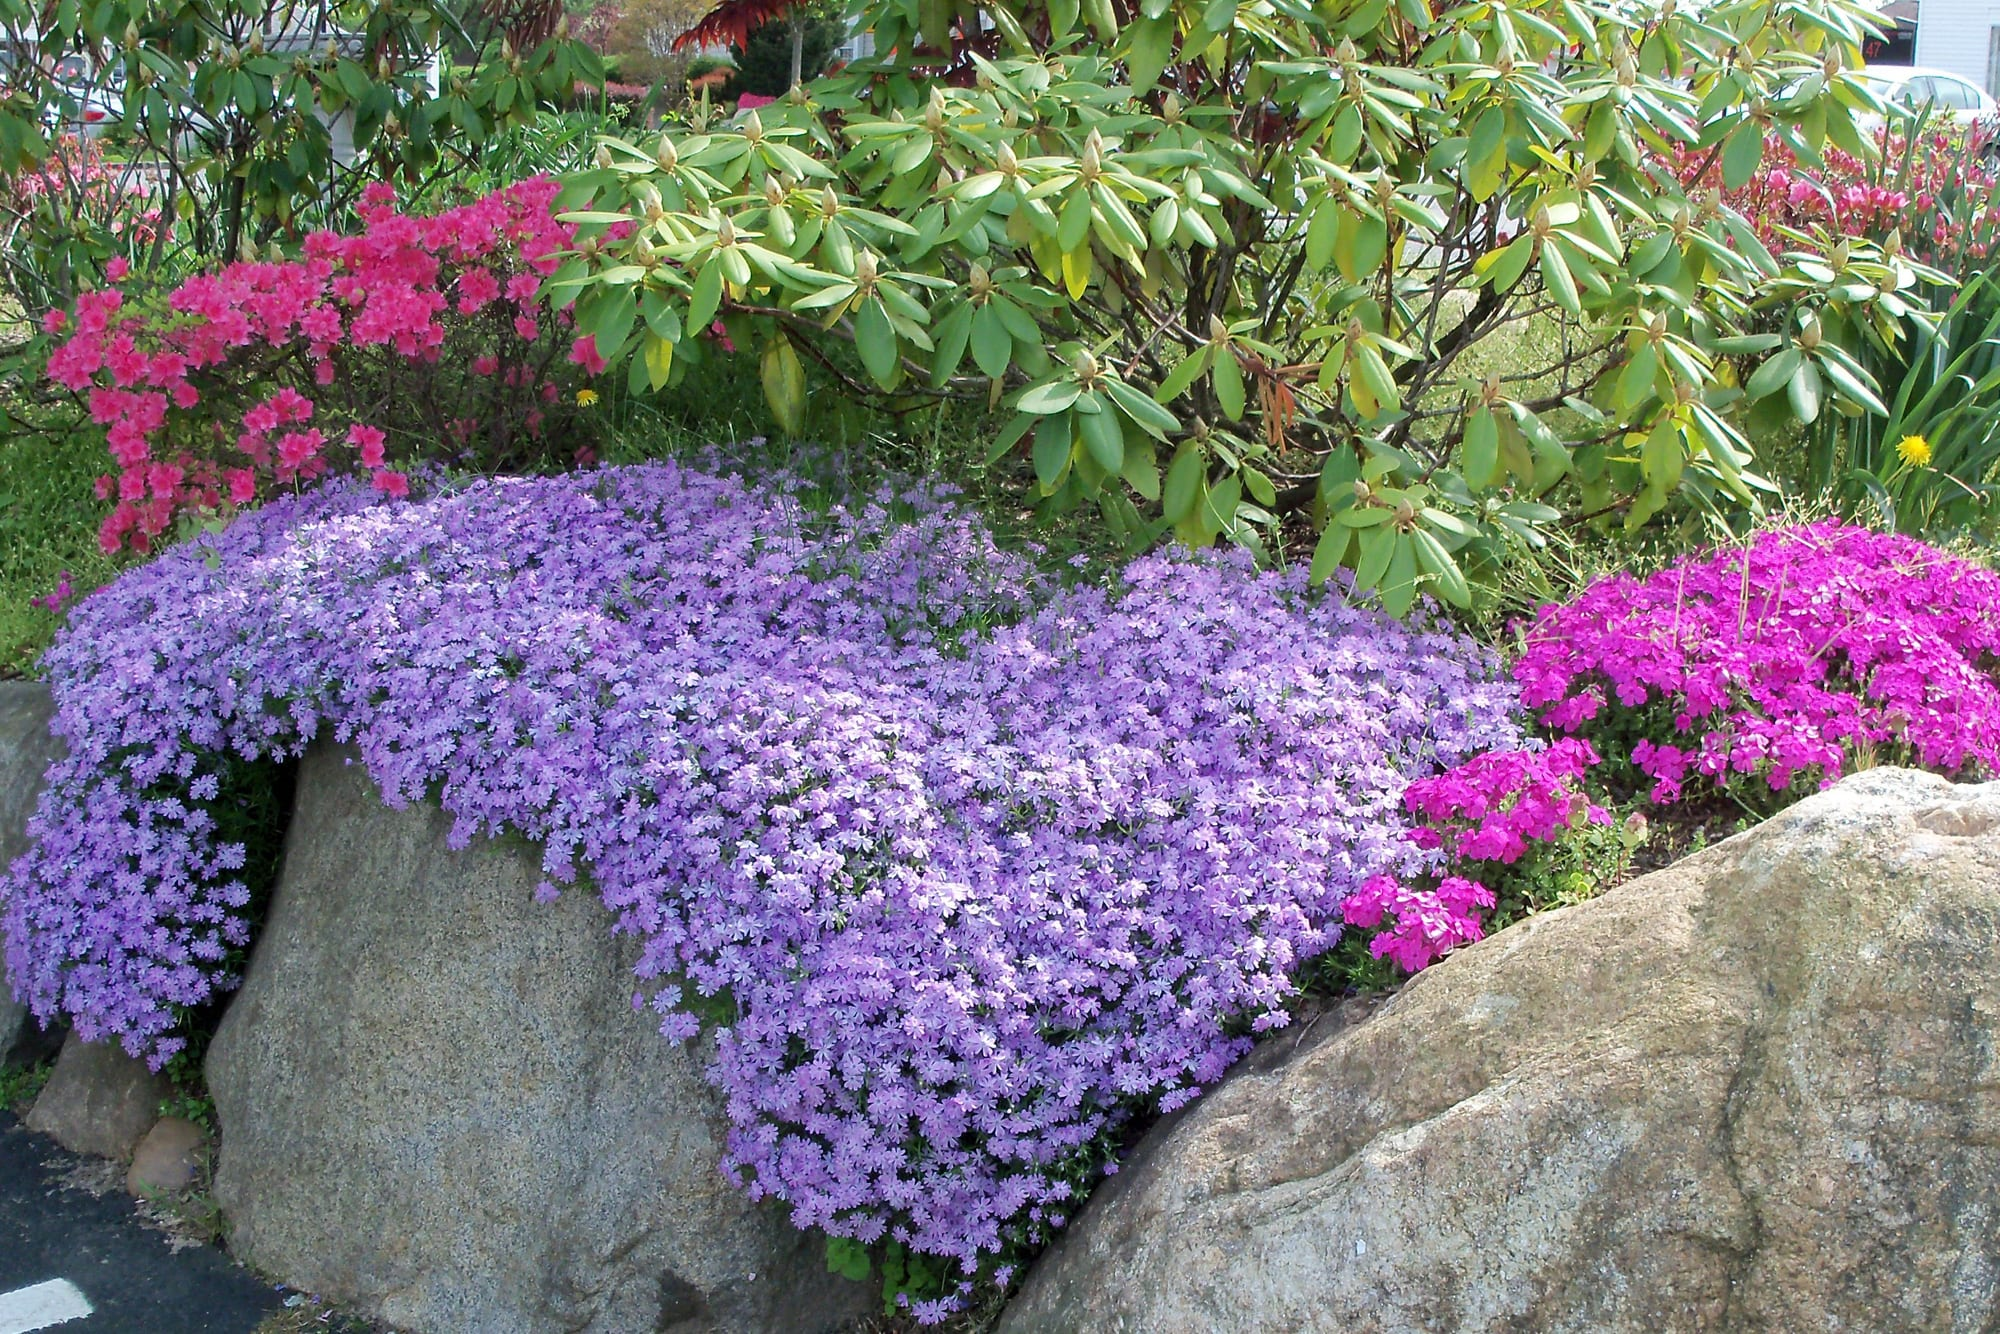 Flower Decor For Home Cover Your Garden With A Blanket Of Phlox Tbr News Media